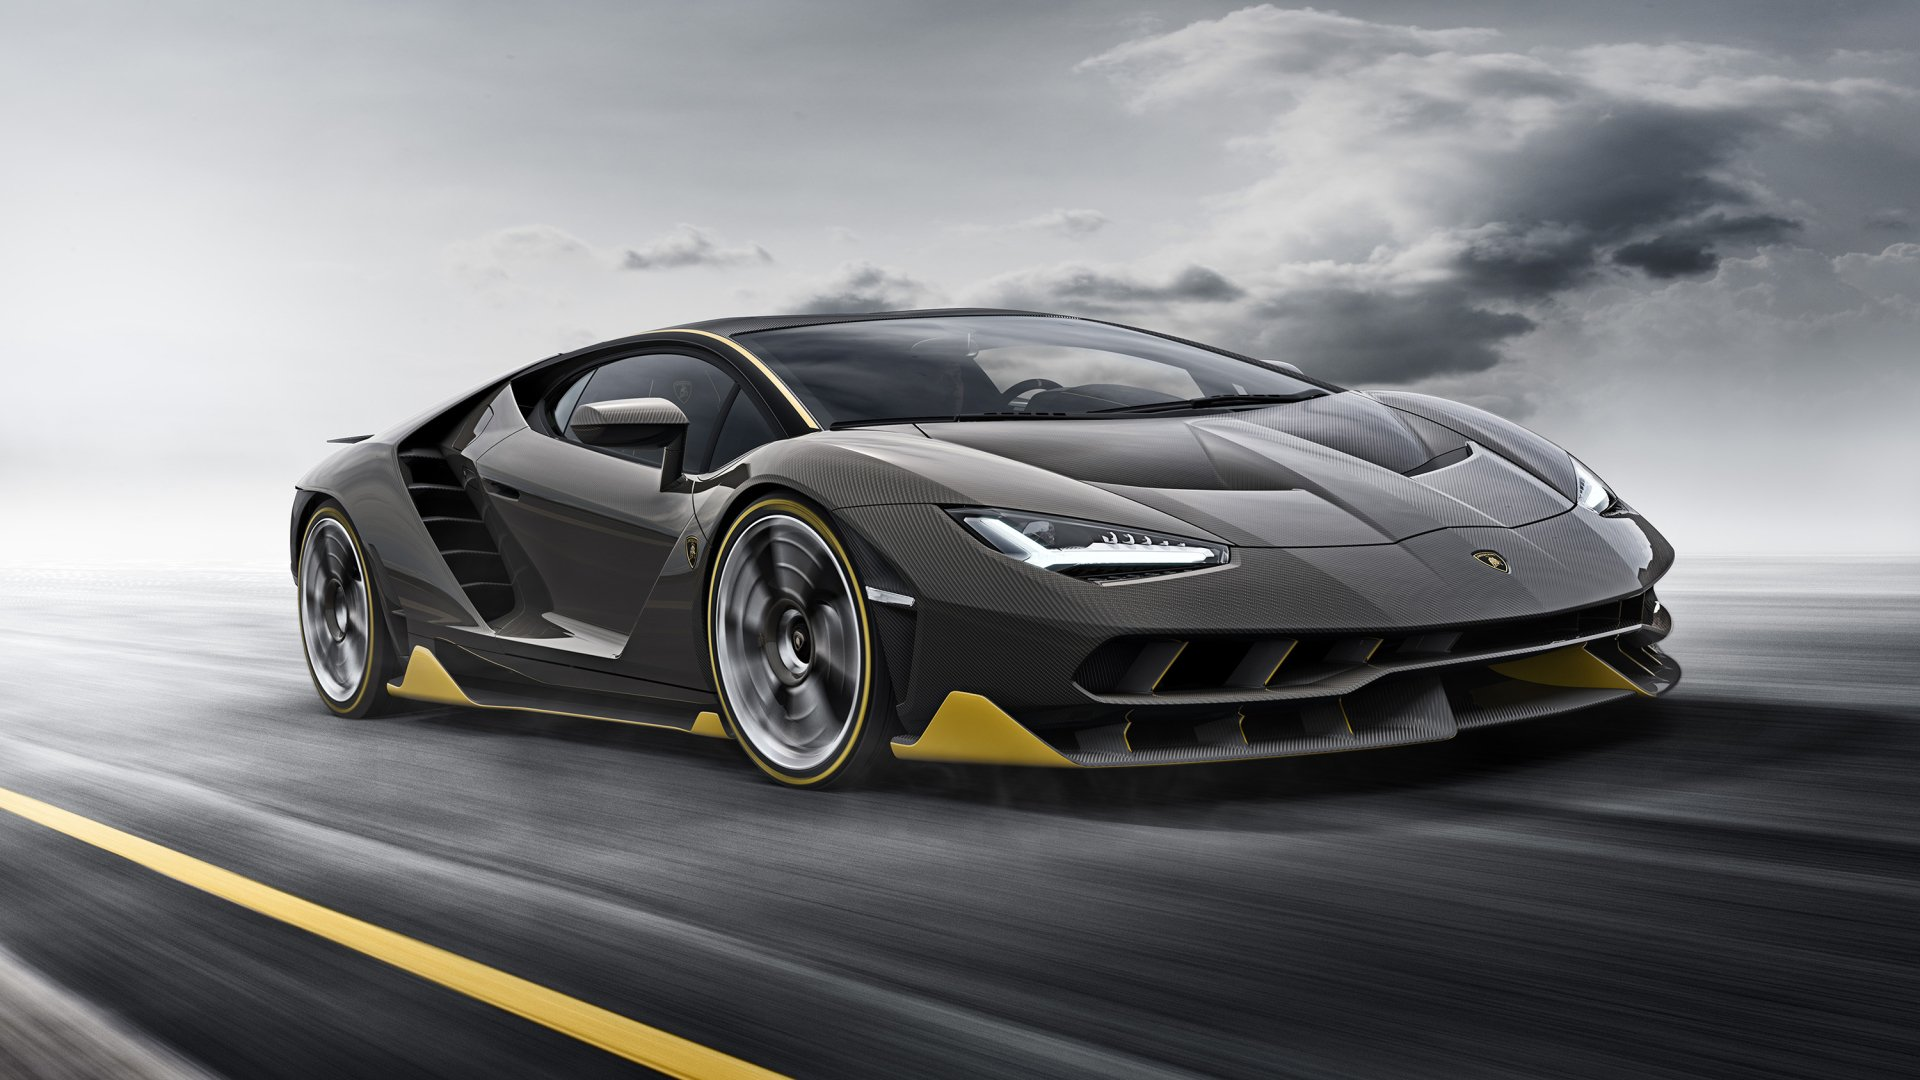 Vehicles - Lamborghini Centenario  Lamborghini Sport Car Black Car Wallpaper